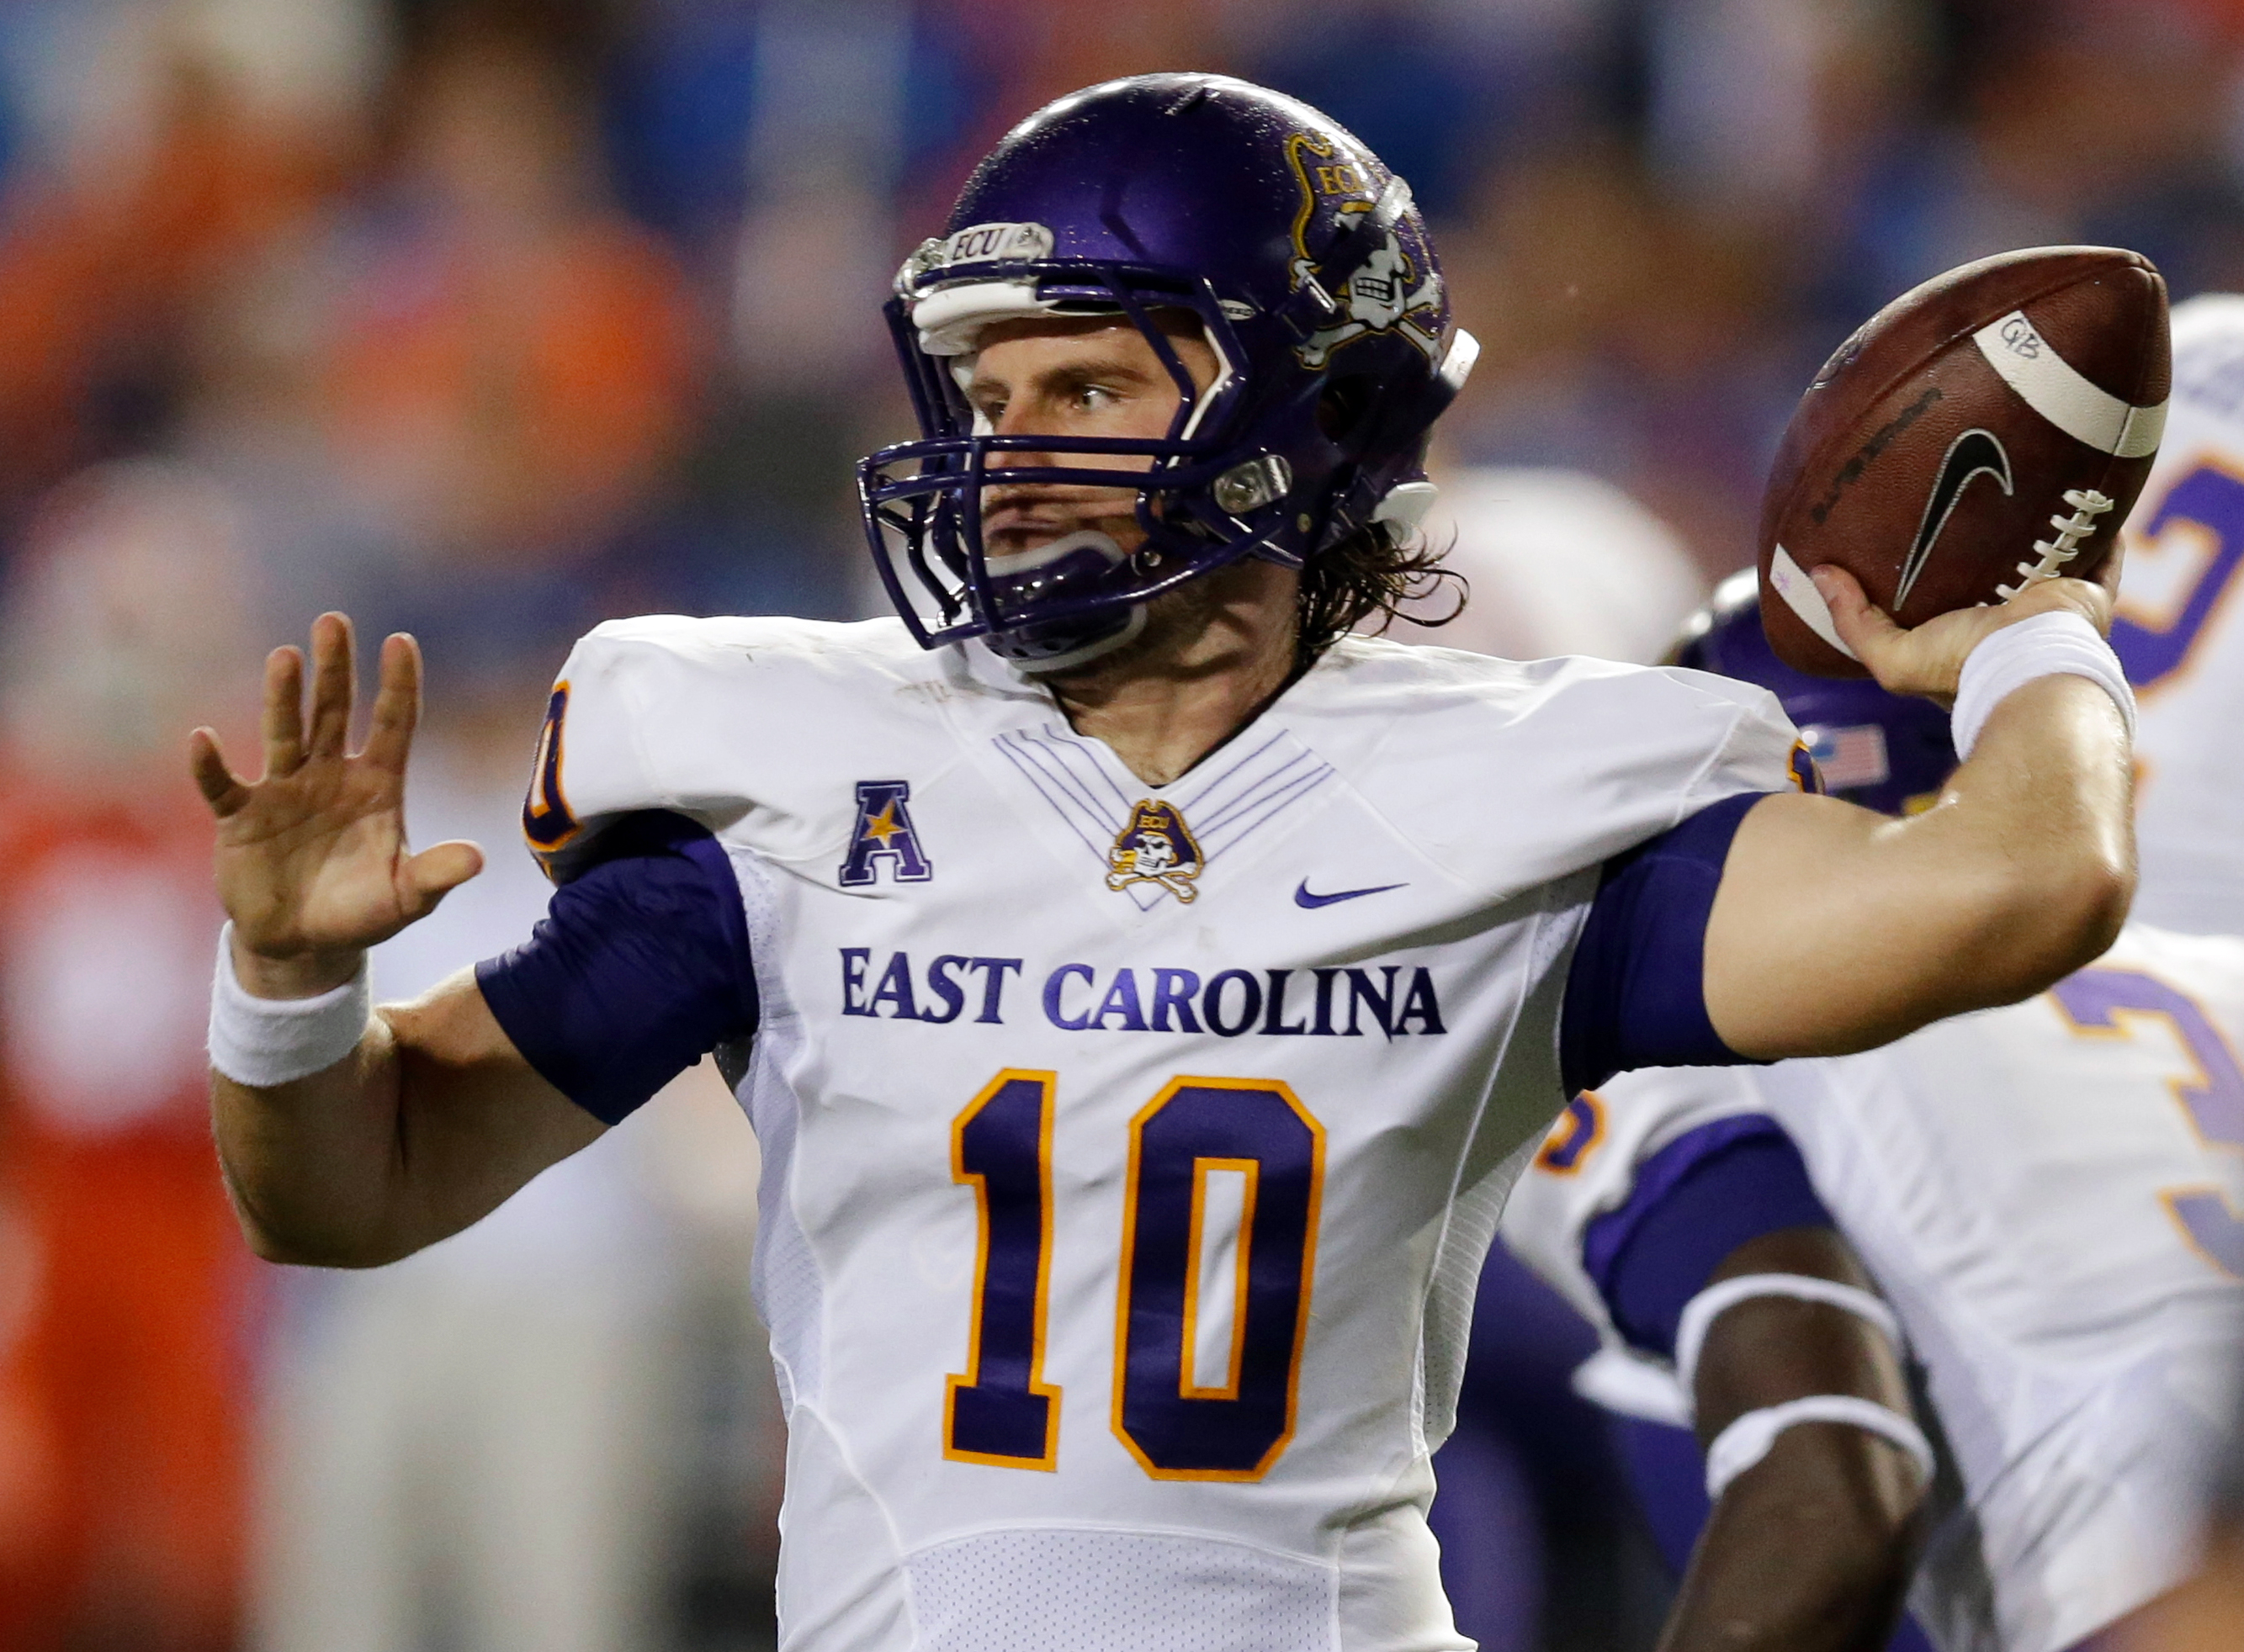 FILE - In this Sept. 12, 2015, file photo, East Carolina quarterback Blake Kemp throws a pass against Florida during the first half of an NCAA college football game in Gainesville, Fla. Kemp has thrown for nearly 900 yards in his first three starts for th